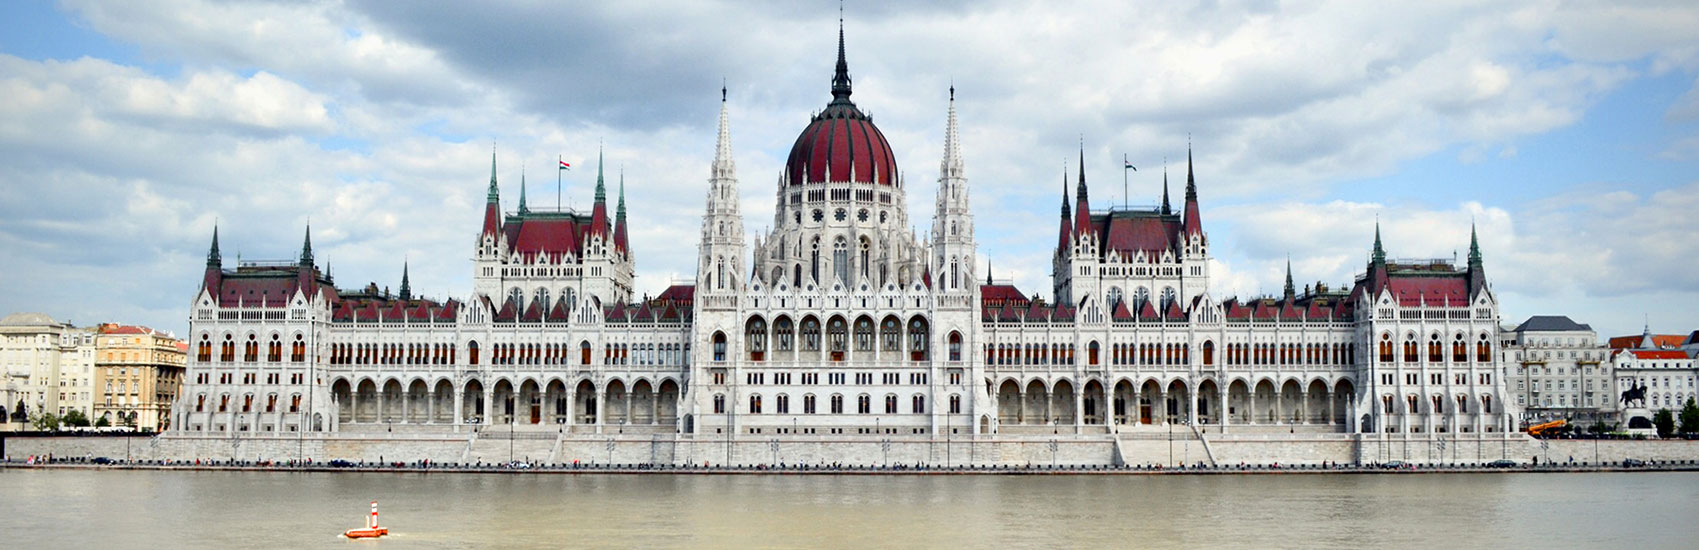 Special Savings on European River Cruises with AmaWaterways 1